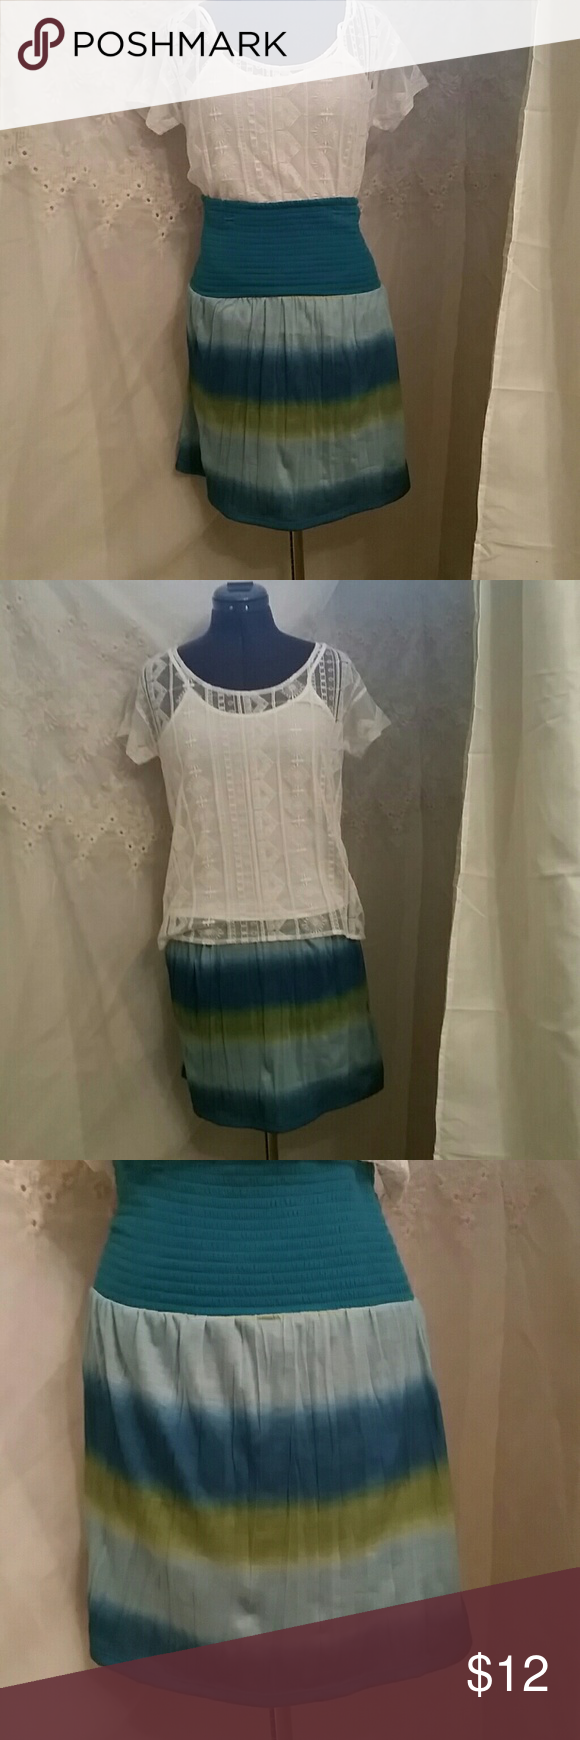 NWOT BEAUTIFUL SKIRT This adorable skirt is in excellent condition. Never been wore. Turquoise, light blue and mustard yellow.  Tie dyed. High waisted. Maurices Skirts